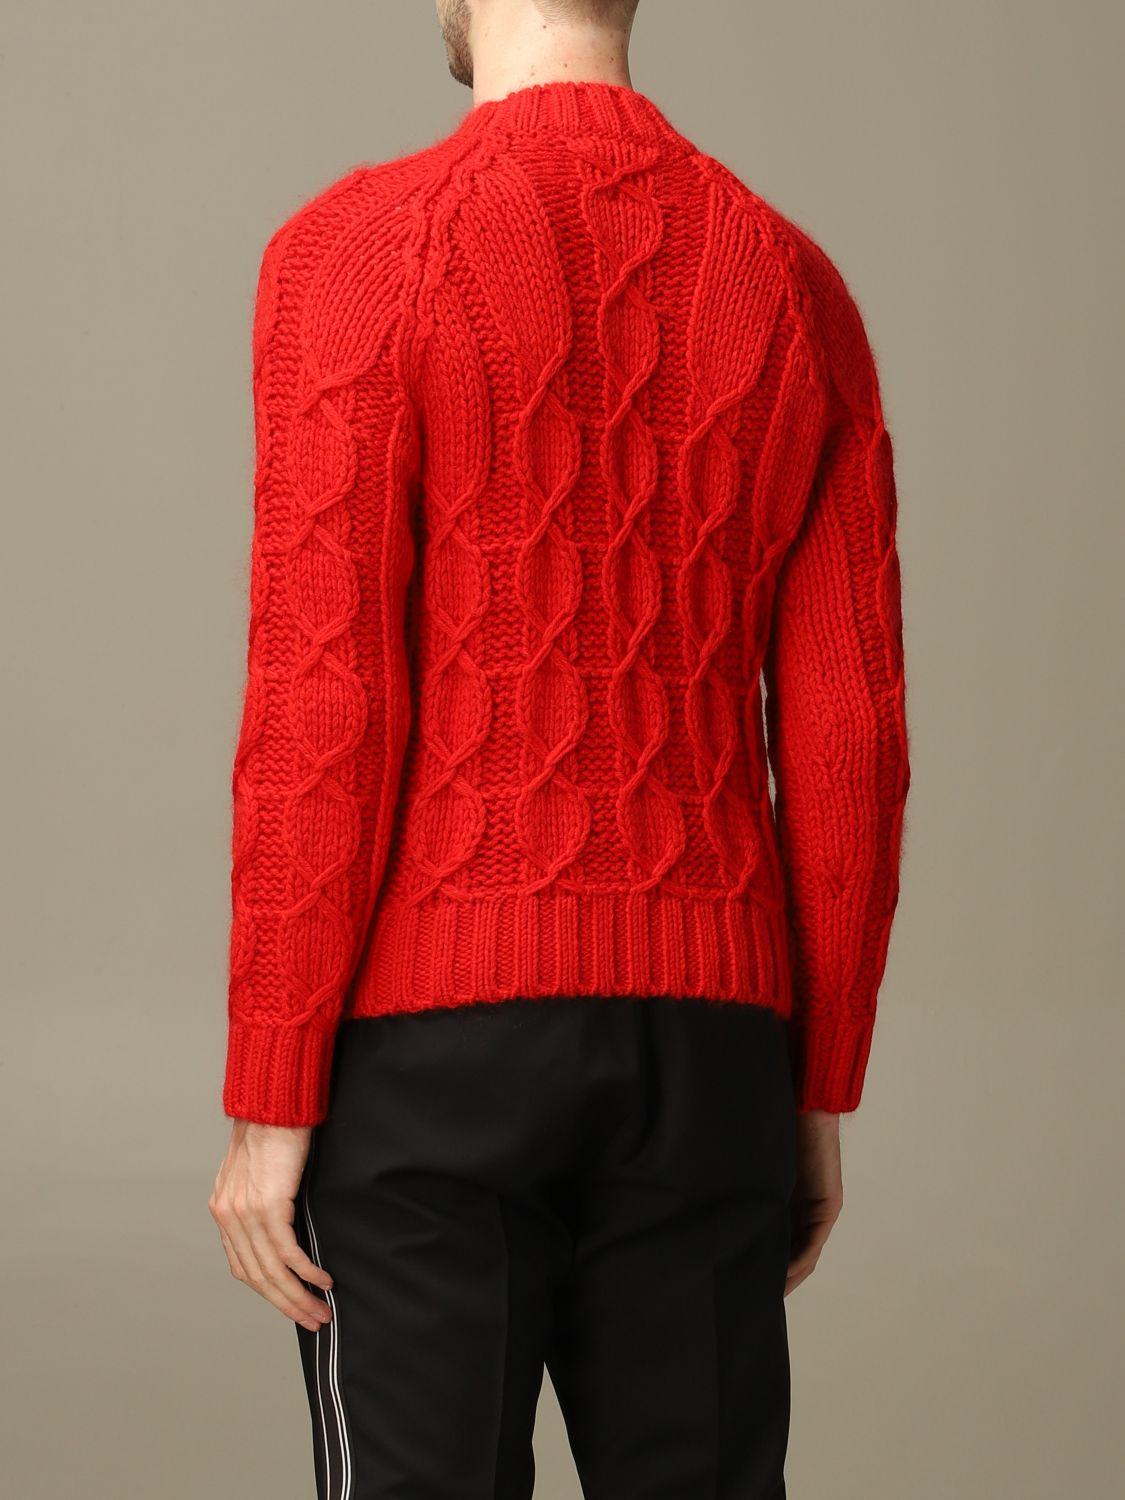 Sweater Saint Laurent: Saint Laurent cable sweater in Mohair wool red 2